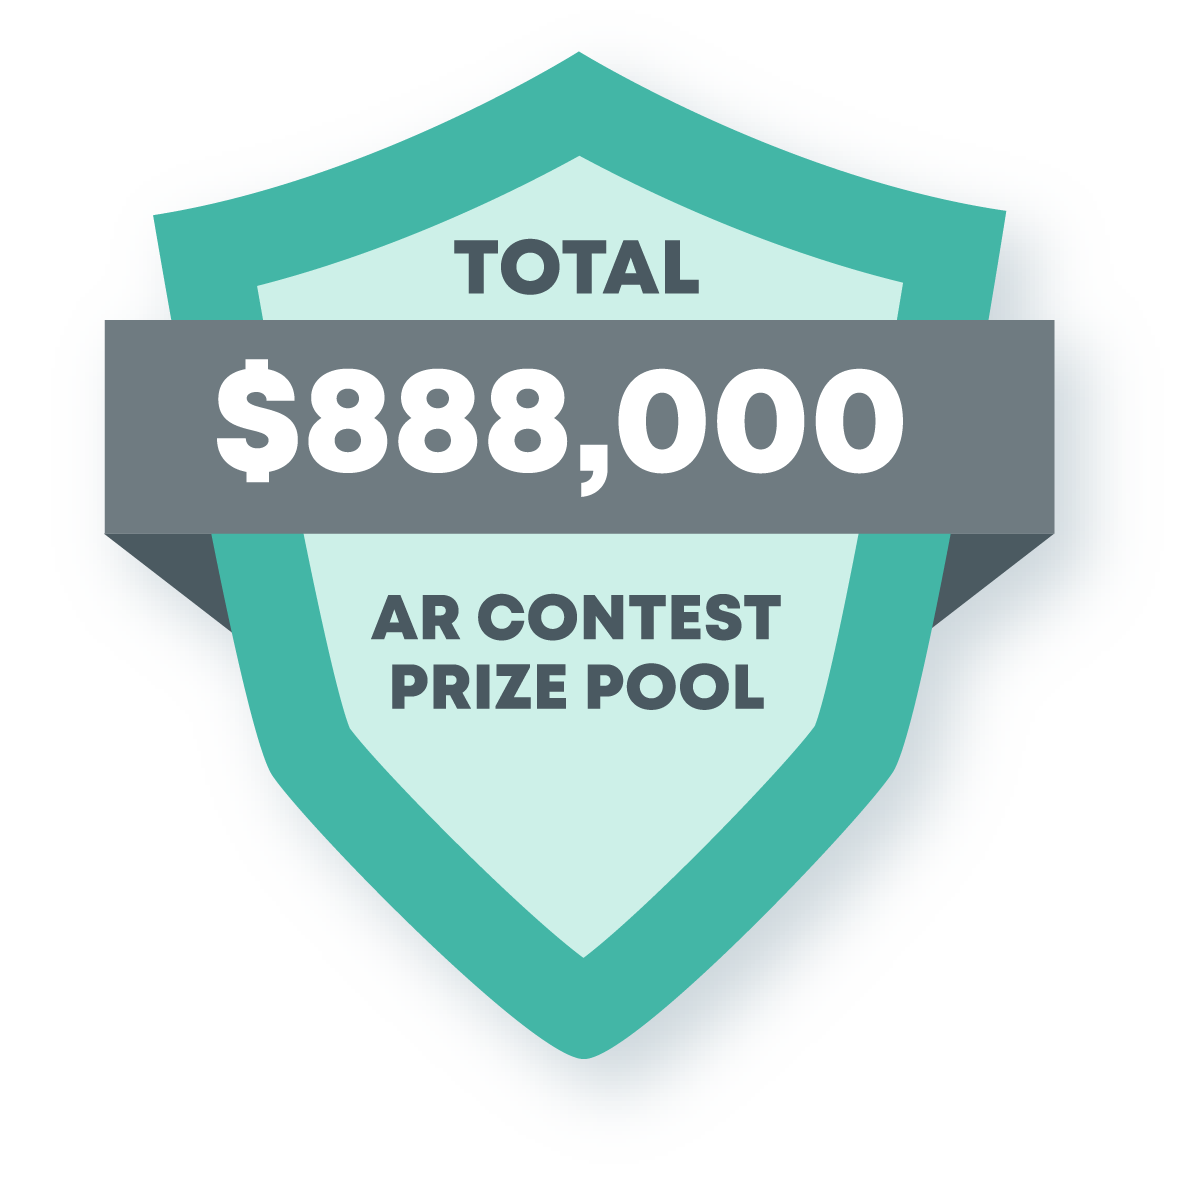 This image contains a shield with a banner announcing a total of $888,000 AR contest prize pool.